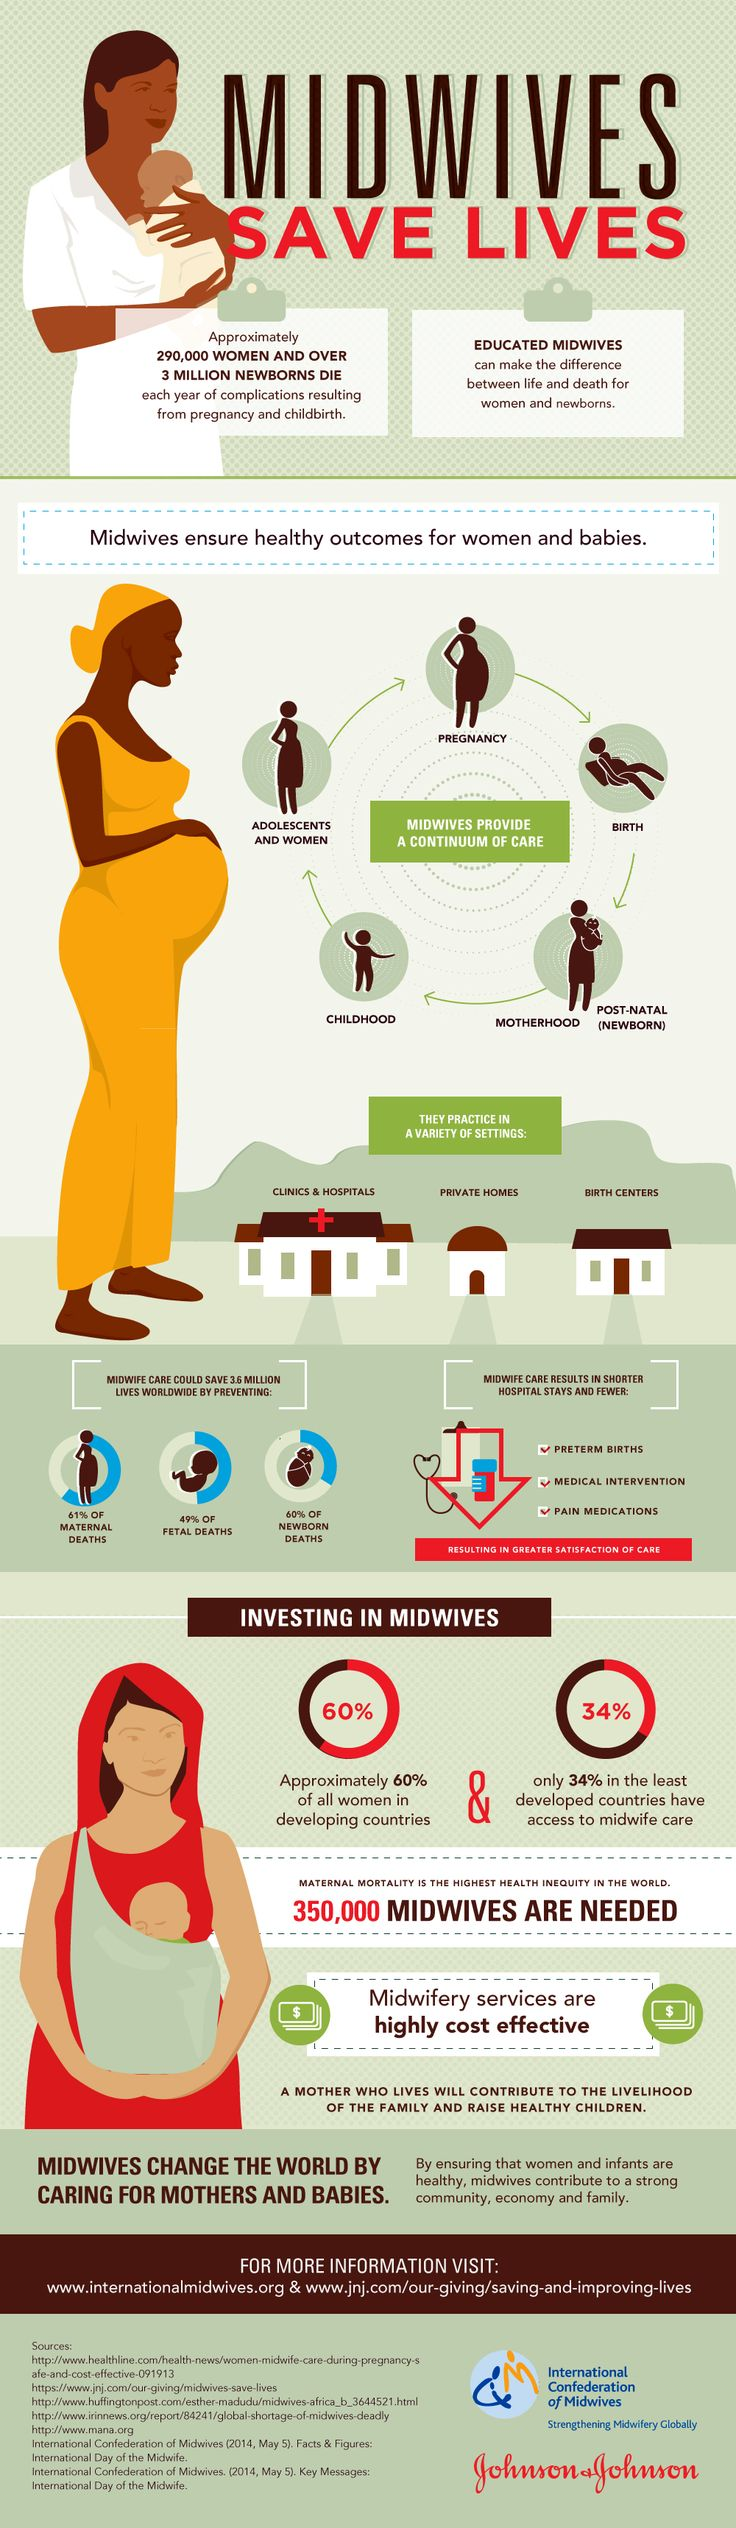 Investing in Midwives Infographic